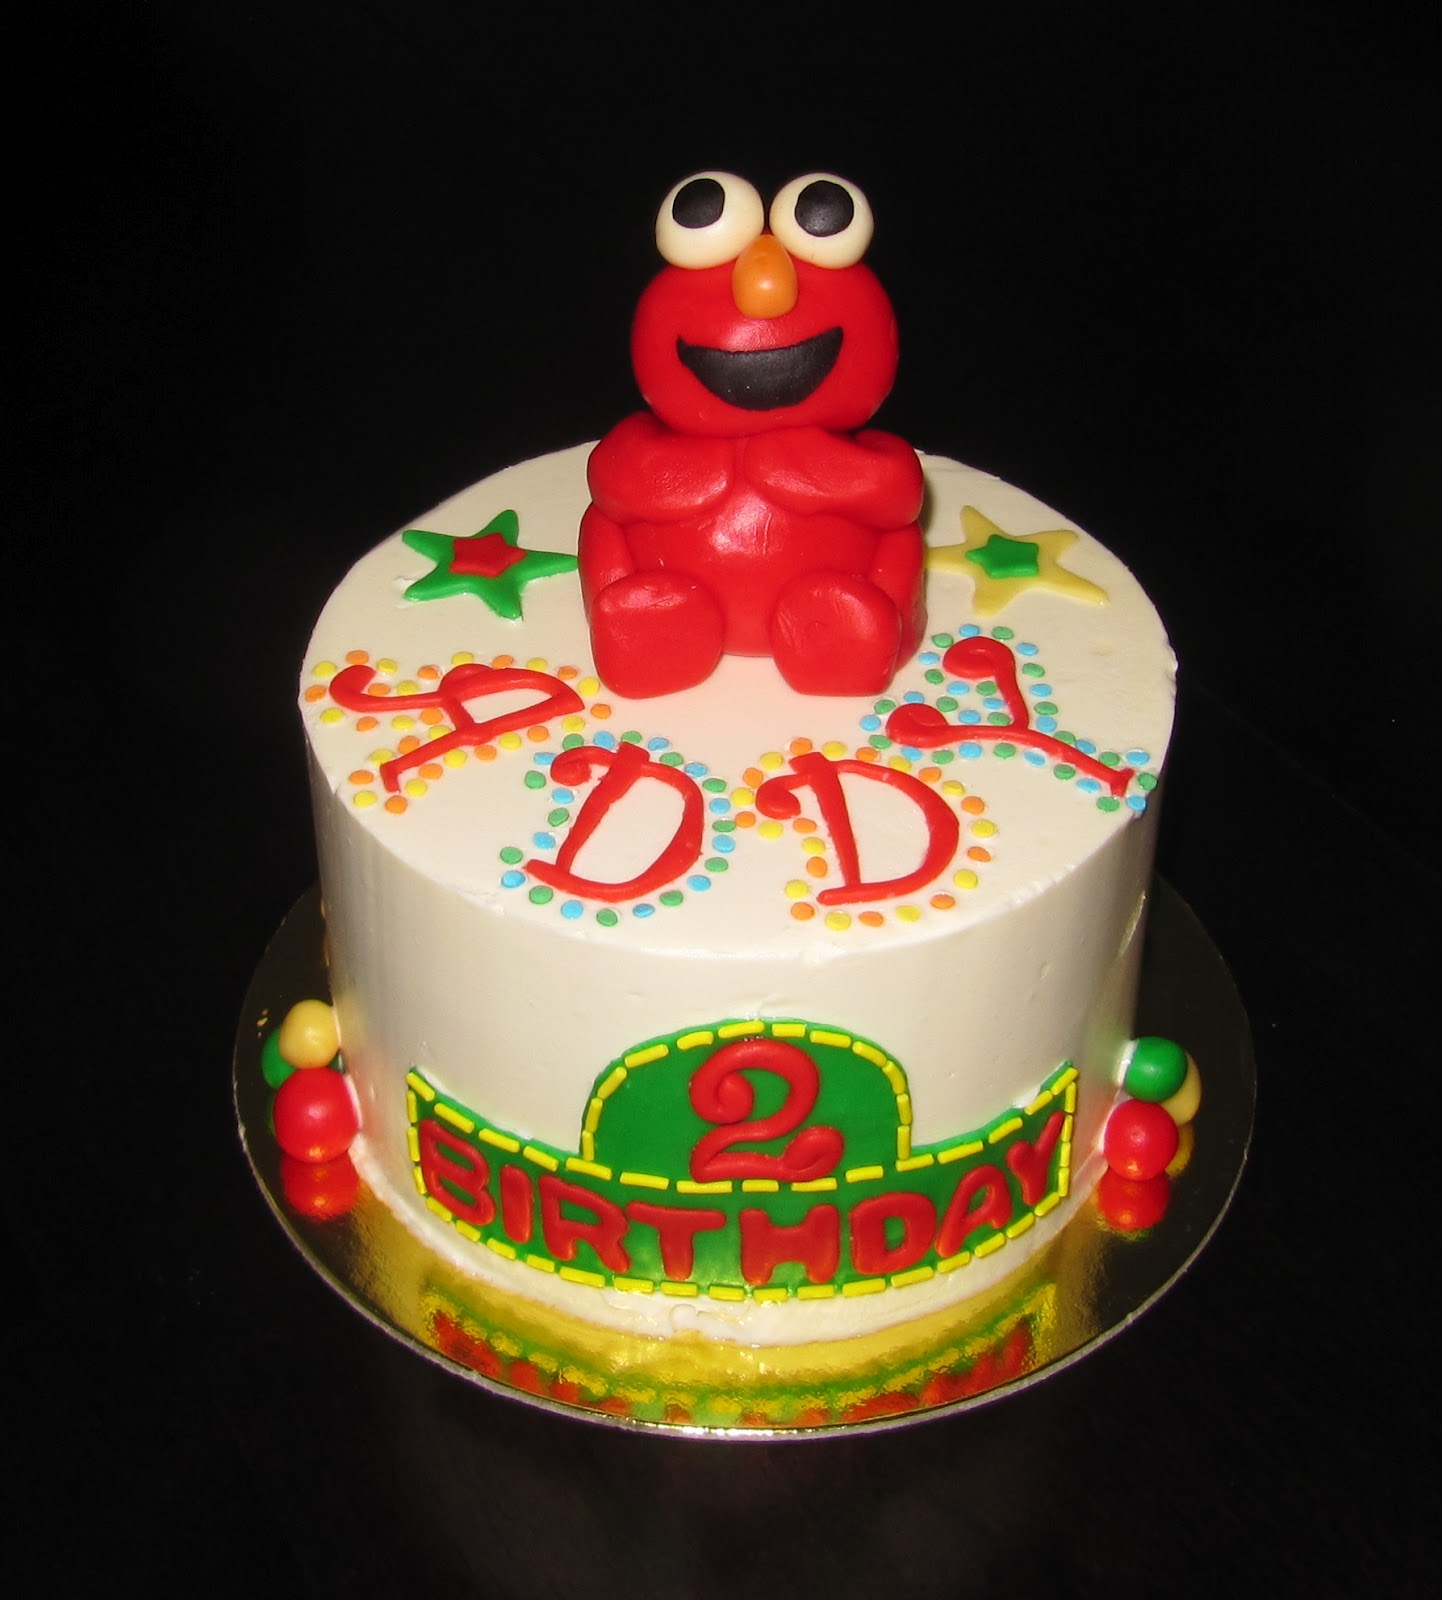 Decorations In A Way So They Could Be Easily Taken Off Since My Niece Is Turning 2 And Wont Baby Much Longer I Made Elmo Cake Topper